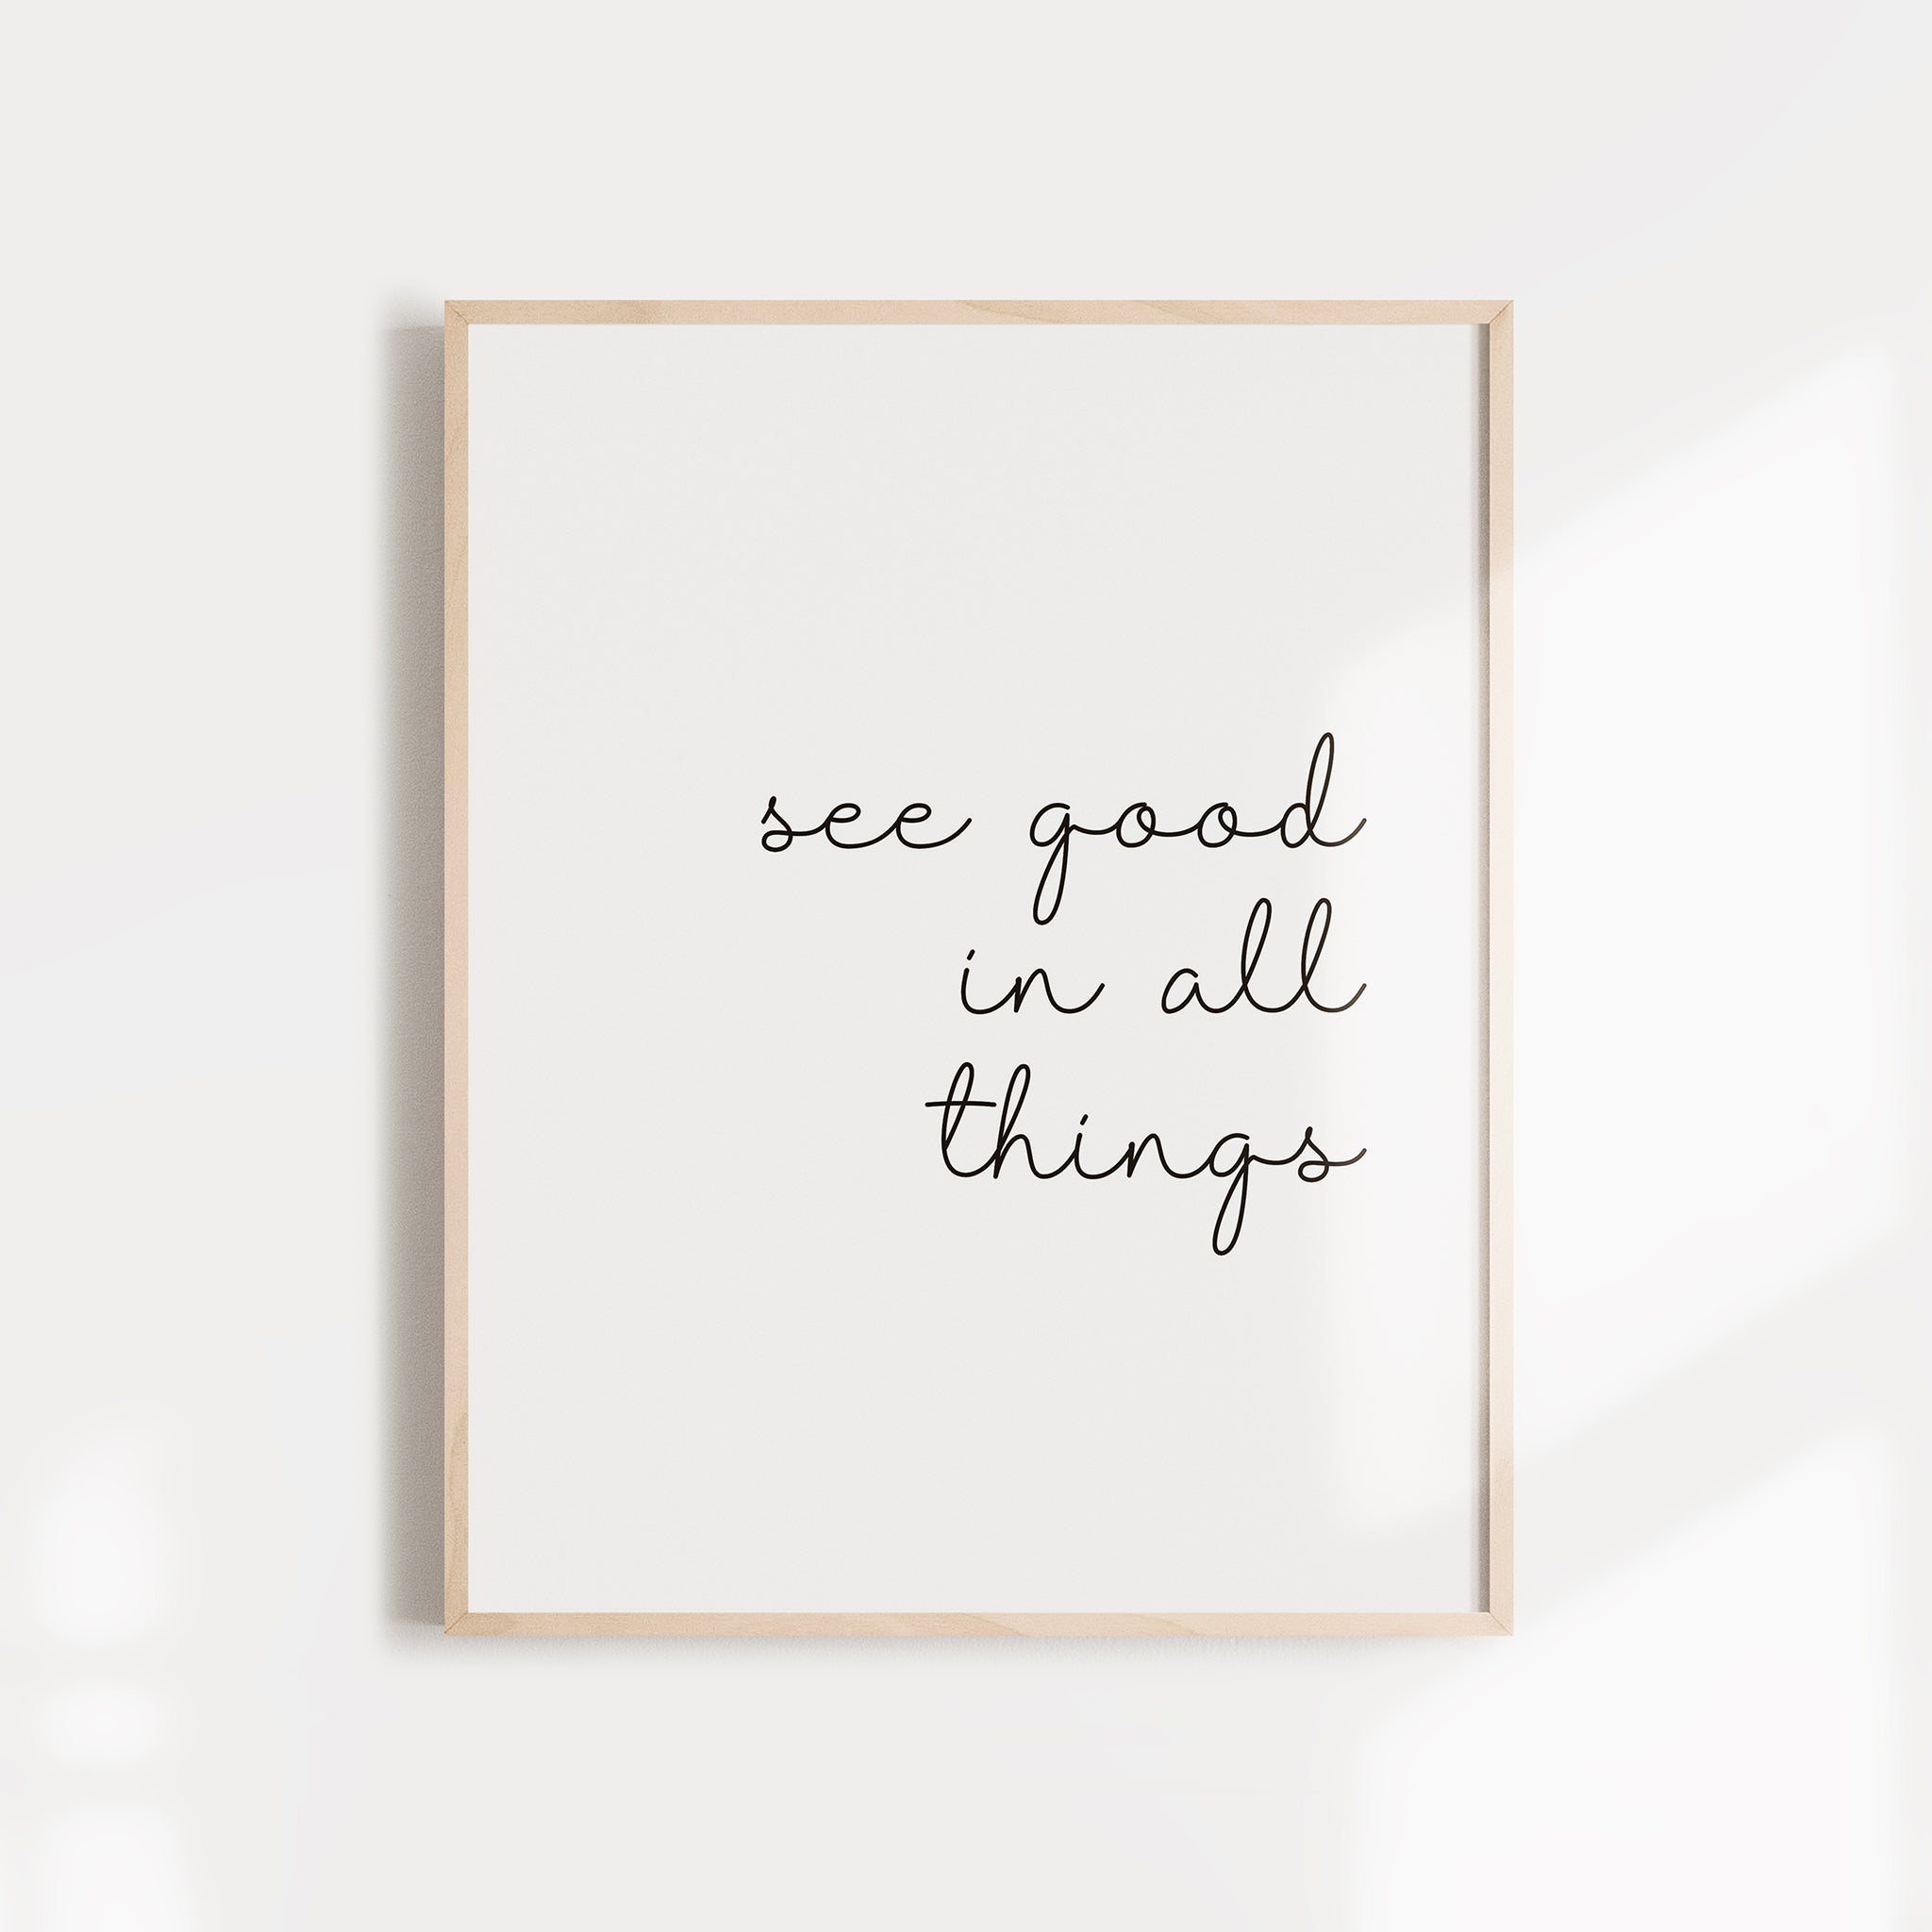 """See good in all things"" quote, positive affirmation wall art poster"